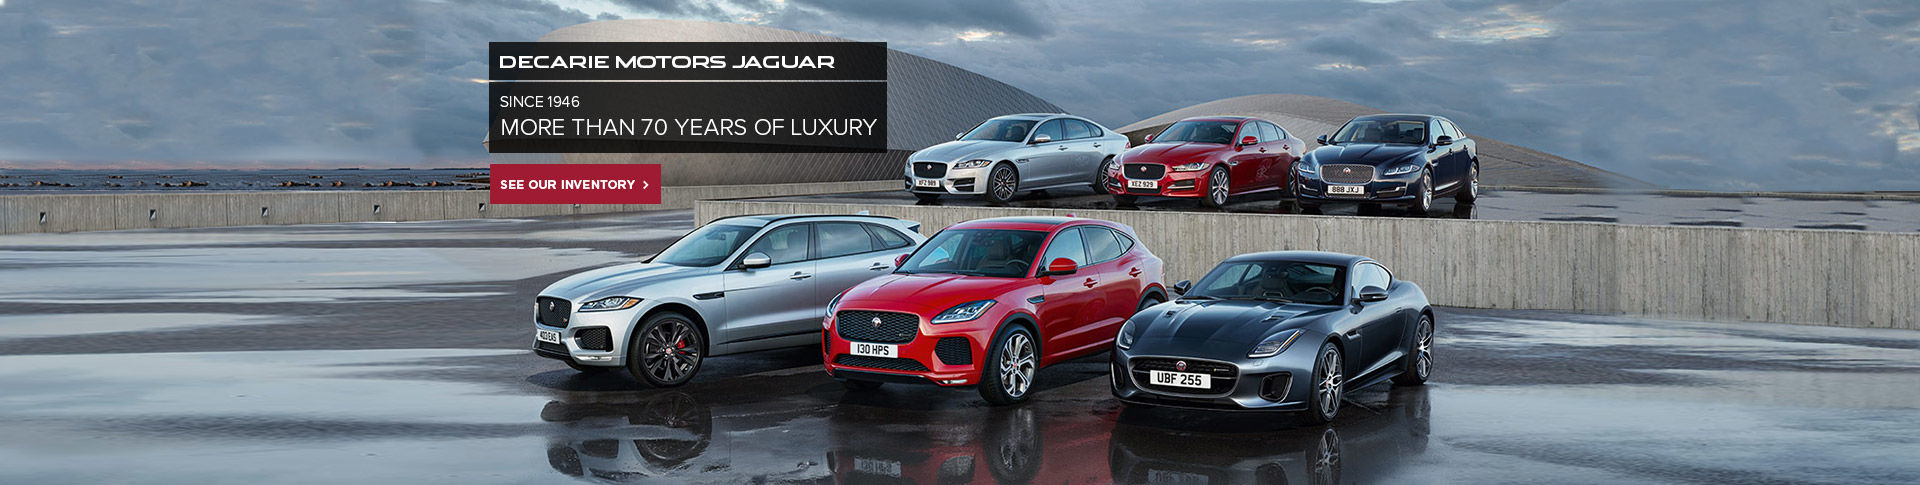 Decarie Motors Jaguar - 70 Years